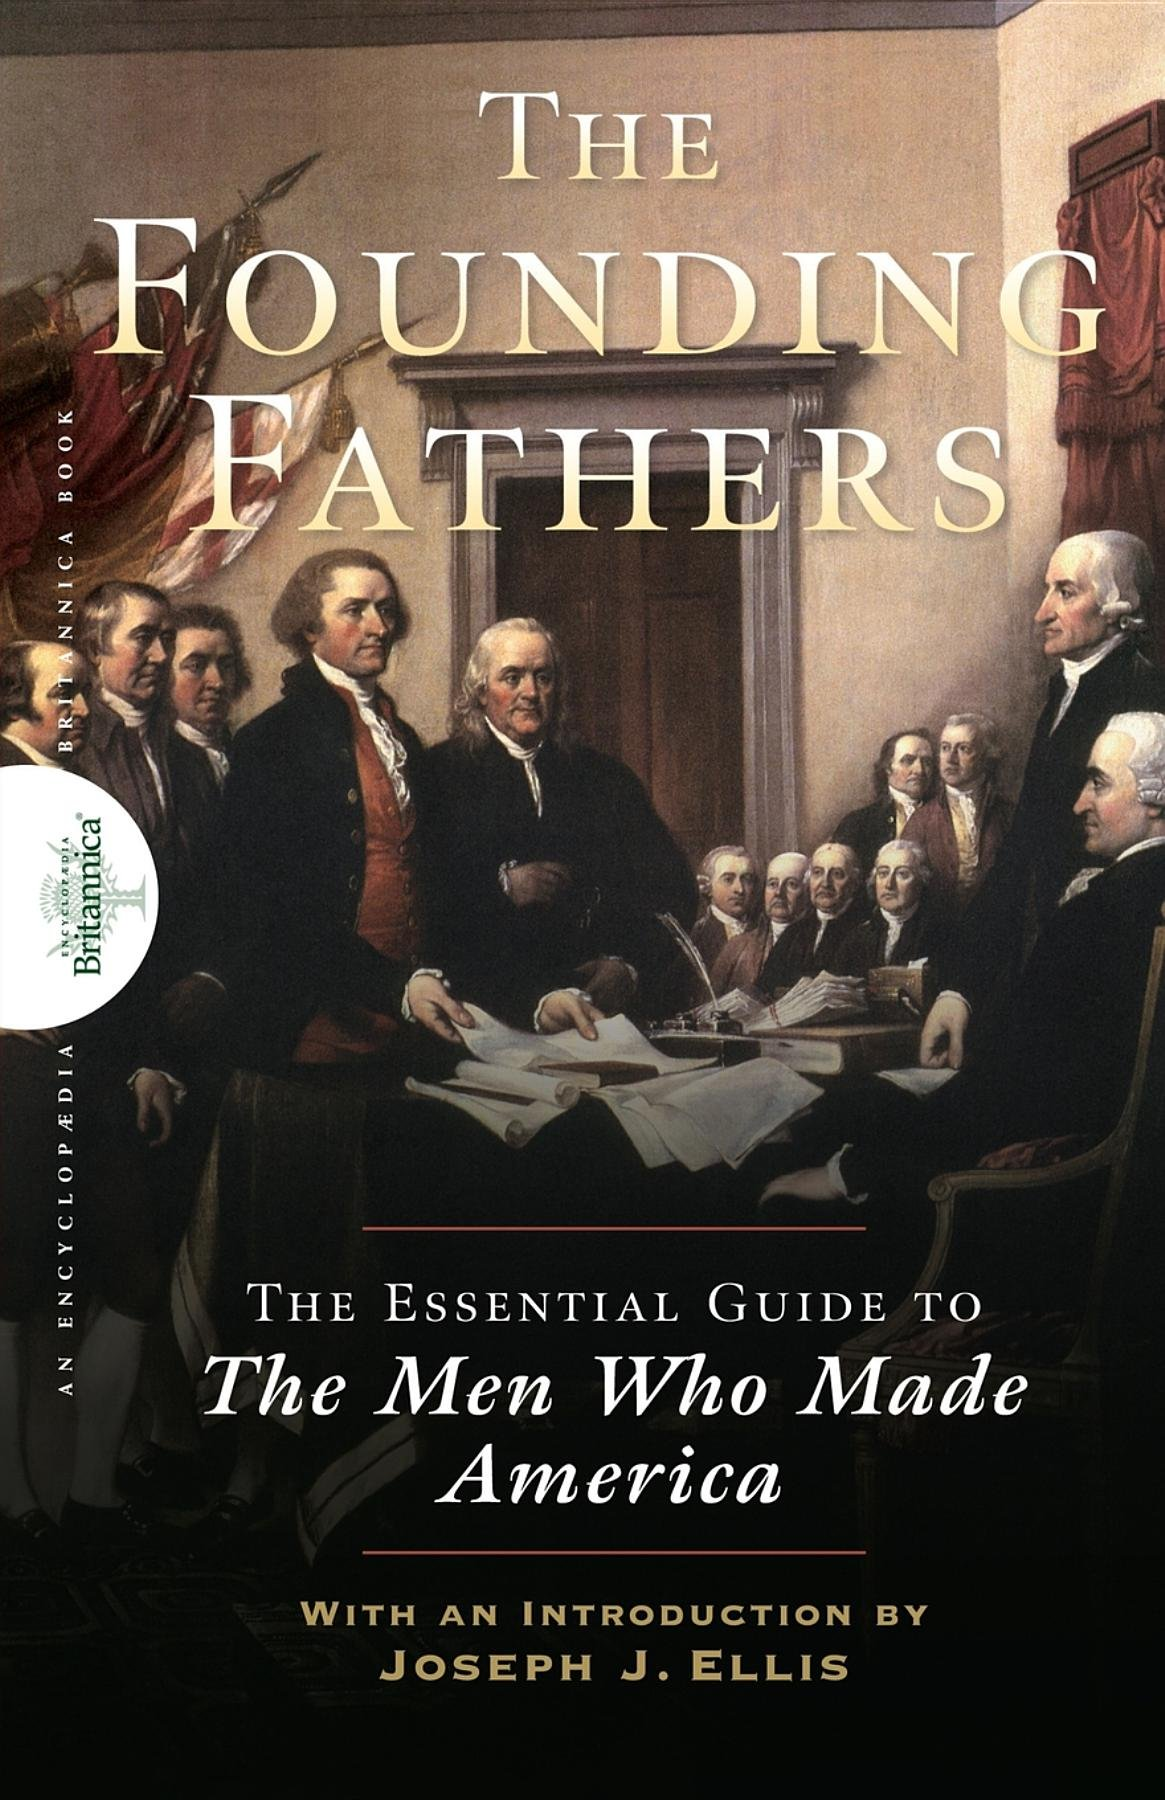 Amazoncom Founding Fathers The Essential Guide To The Men Who - List of the founding fathers of the united states